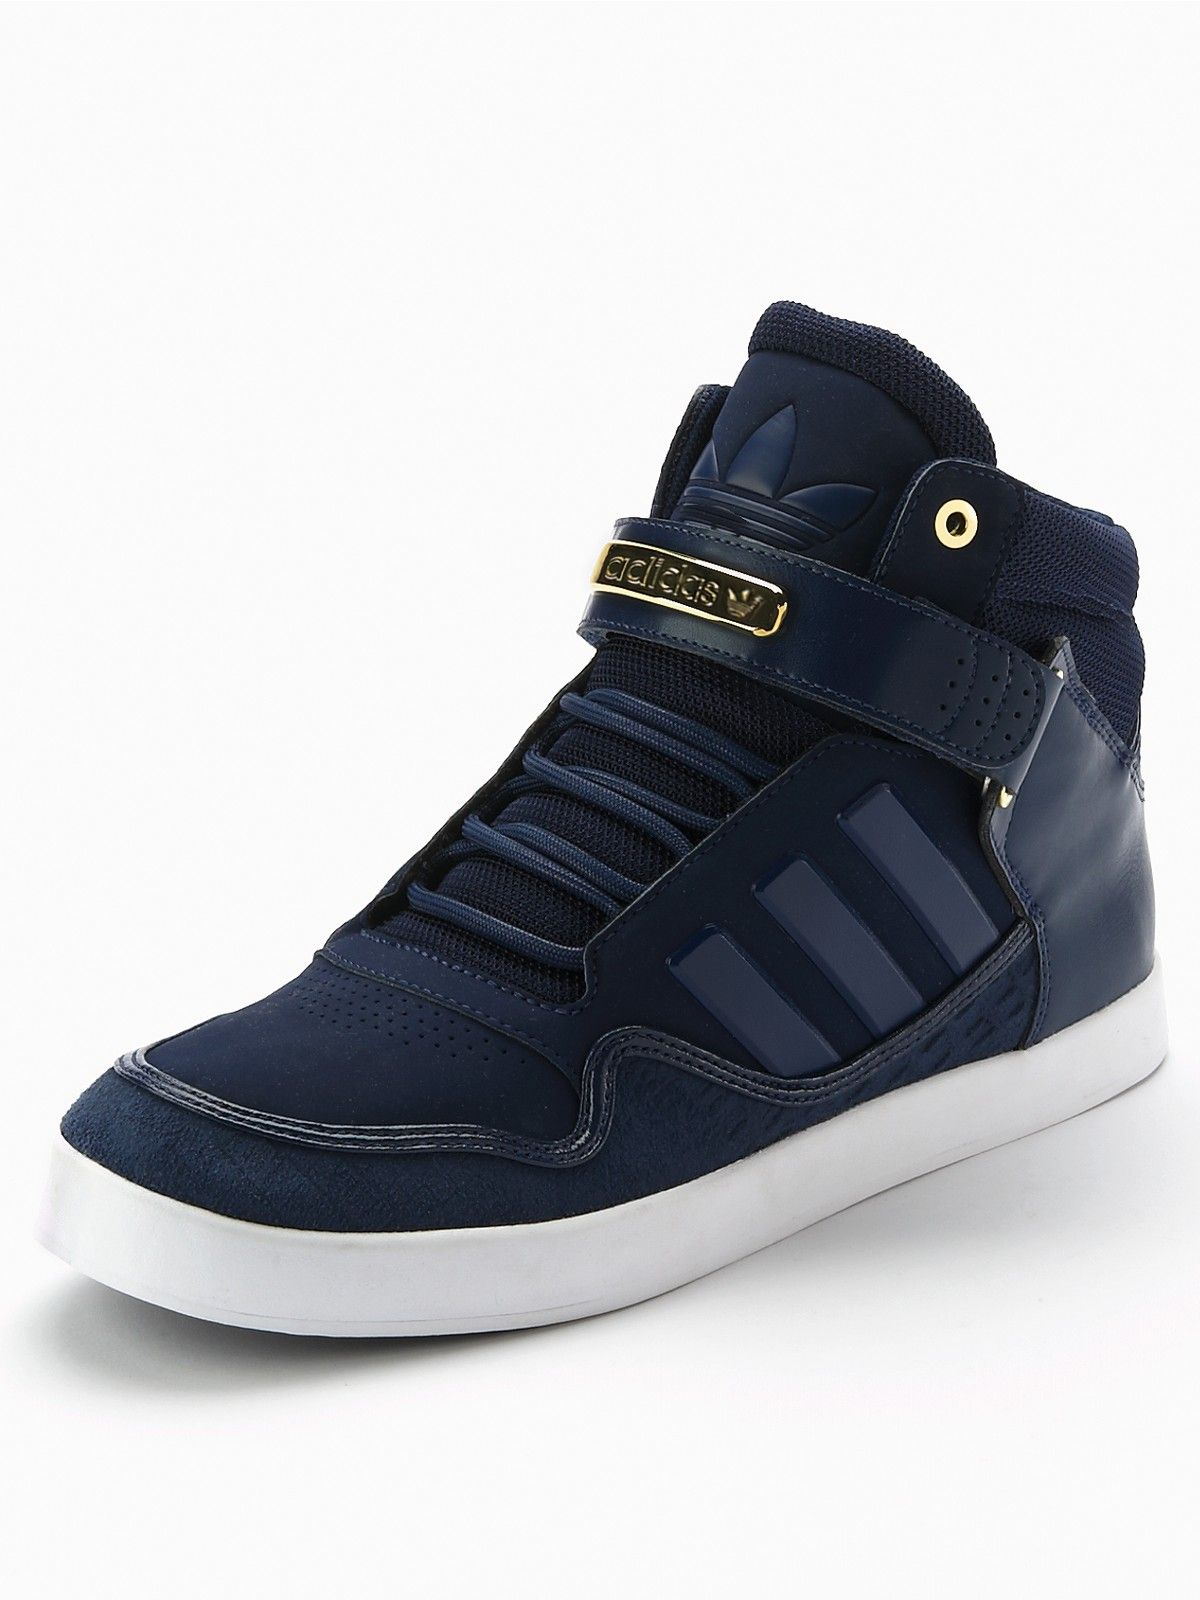 wholesale dealer 03e0b 9fff3 Adidas Originals AdiRise 2.0 Hi Top